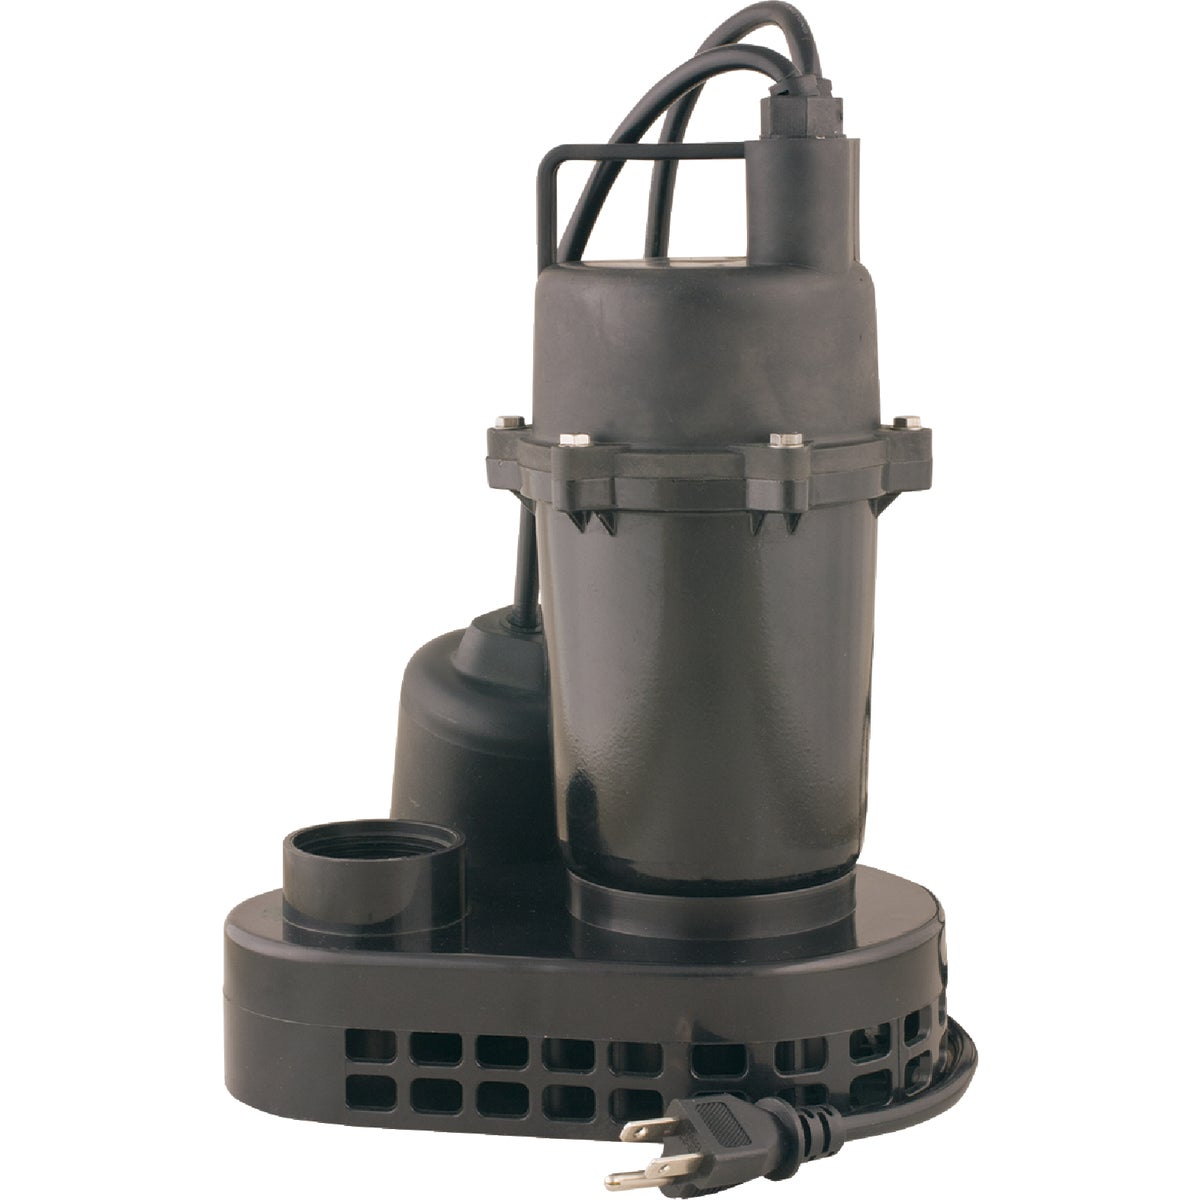 1/4HP PLASTIC SUMP PUMP - 2SPHA-L by Star Water Systems